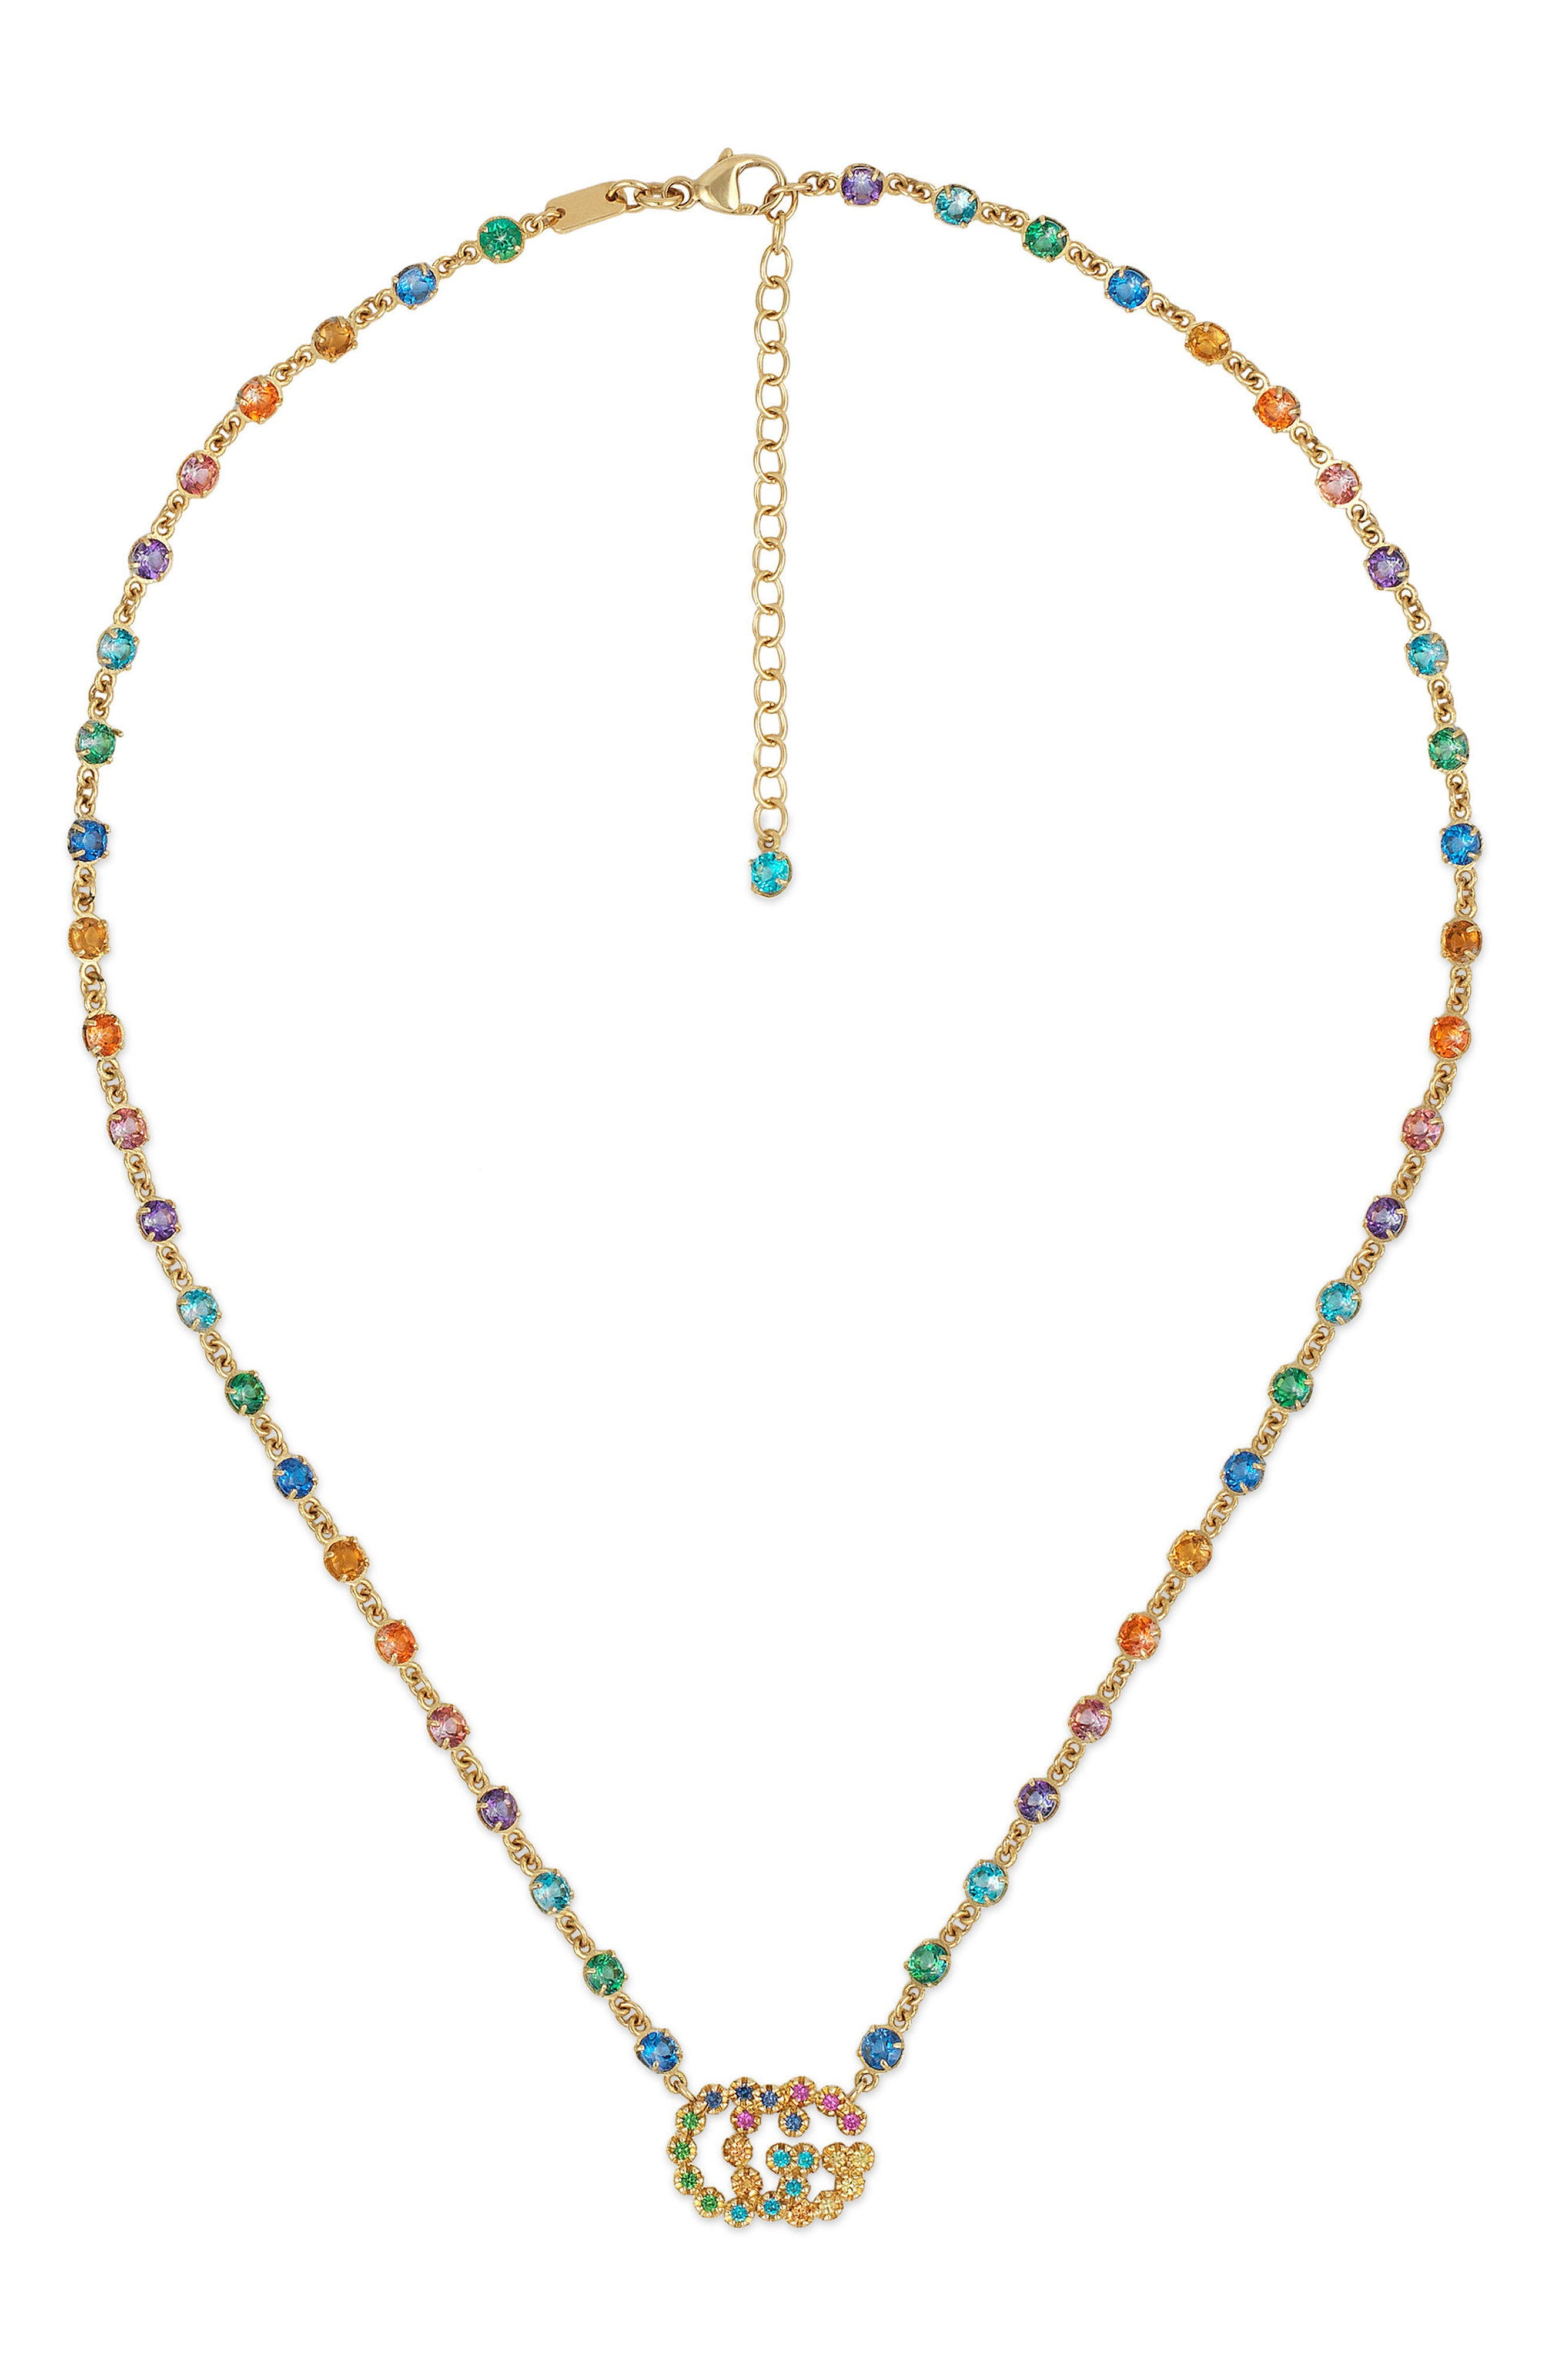 Double-G Multistone Pendant Necklace,                             Main thumbnail 1, color,                             YELLOW GOLD